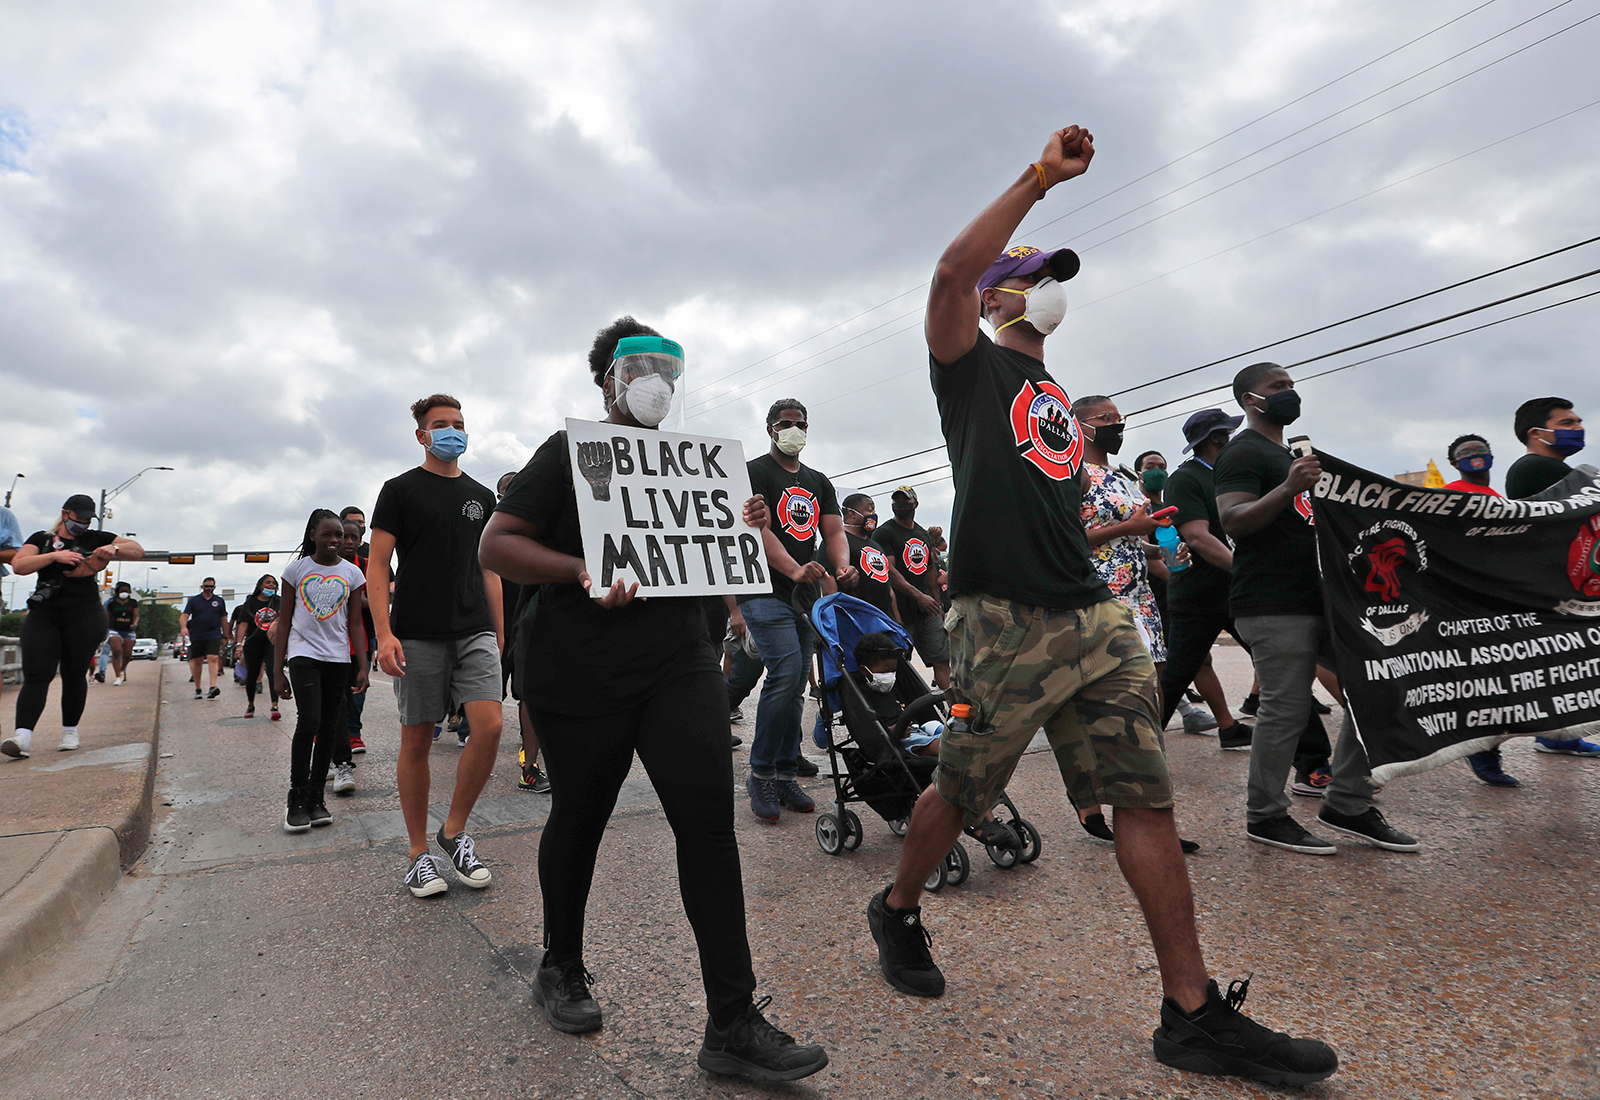 Protesters march in a Black Lives Matter demonstration organized by the Dallas Black Firefighters Association on Juneteenth 2020 in Dallas.